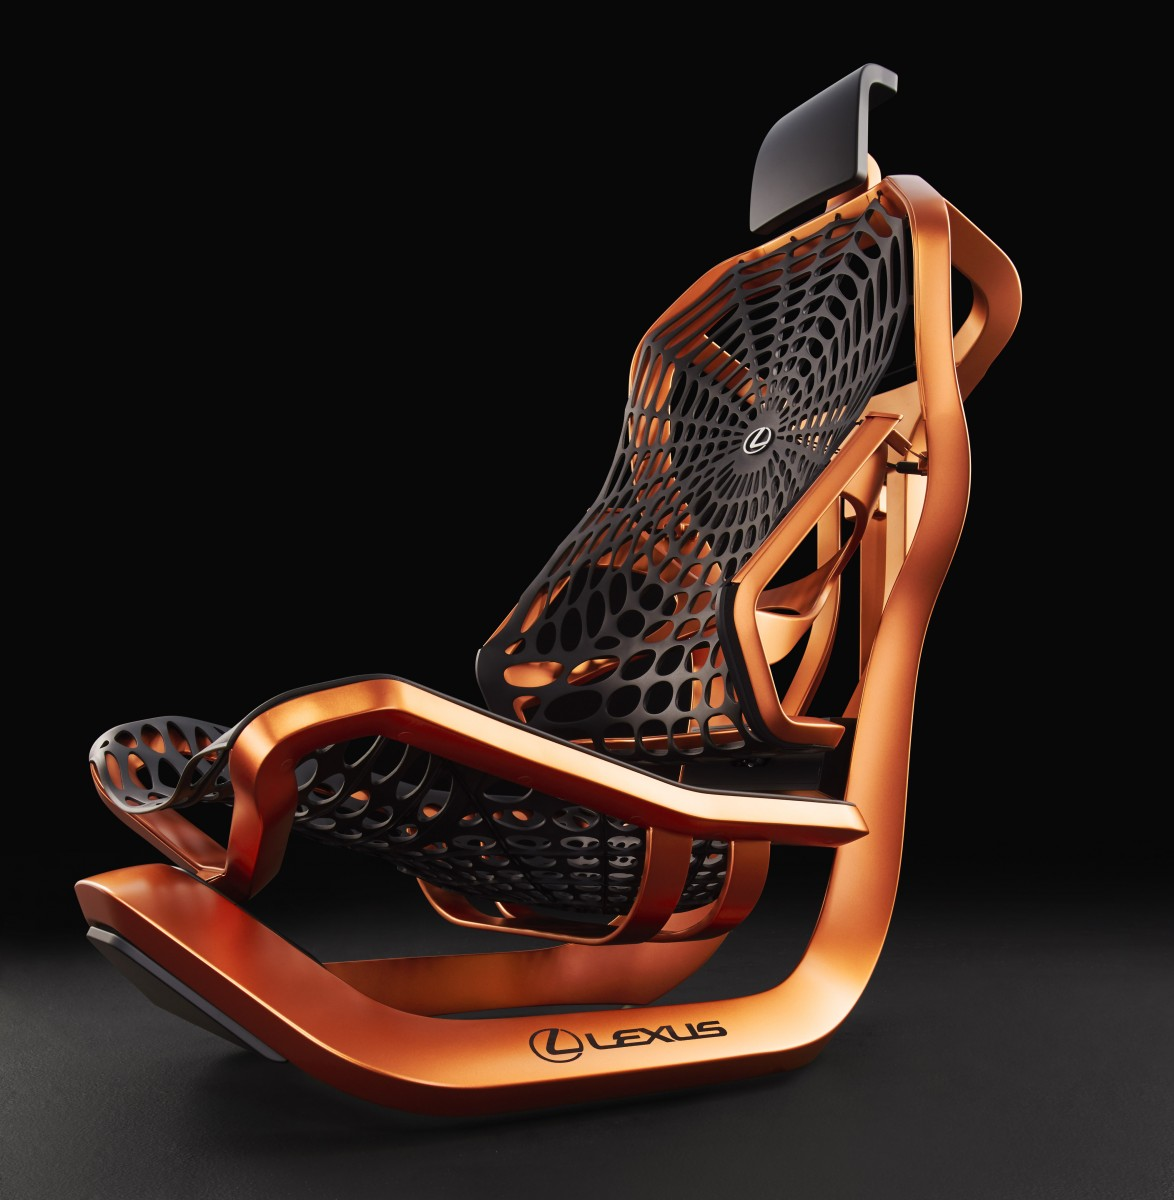 Lexus Kinetic Seat Concept 6